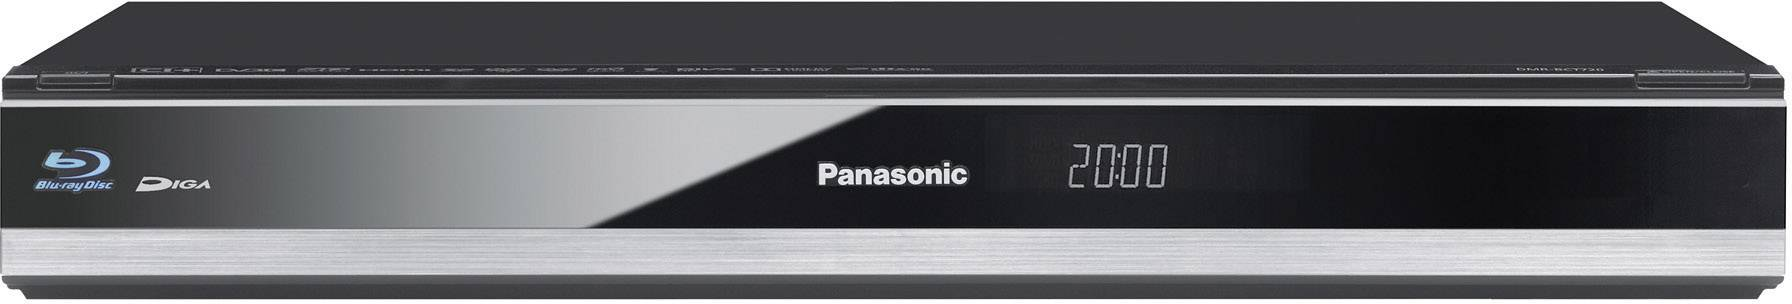 Panasonic DMR-BCT720EG Blu-ray Player Drivers for PC